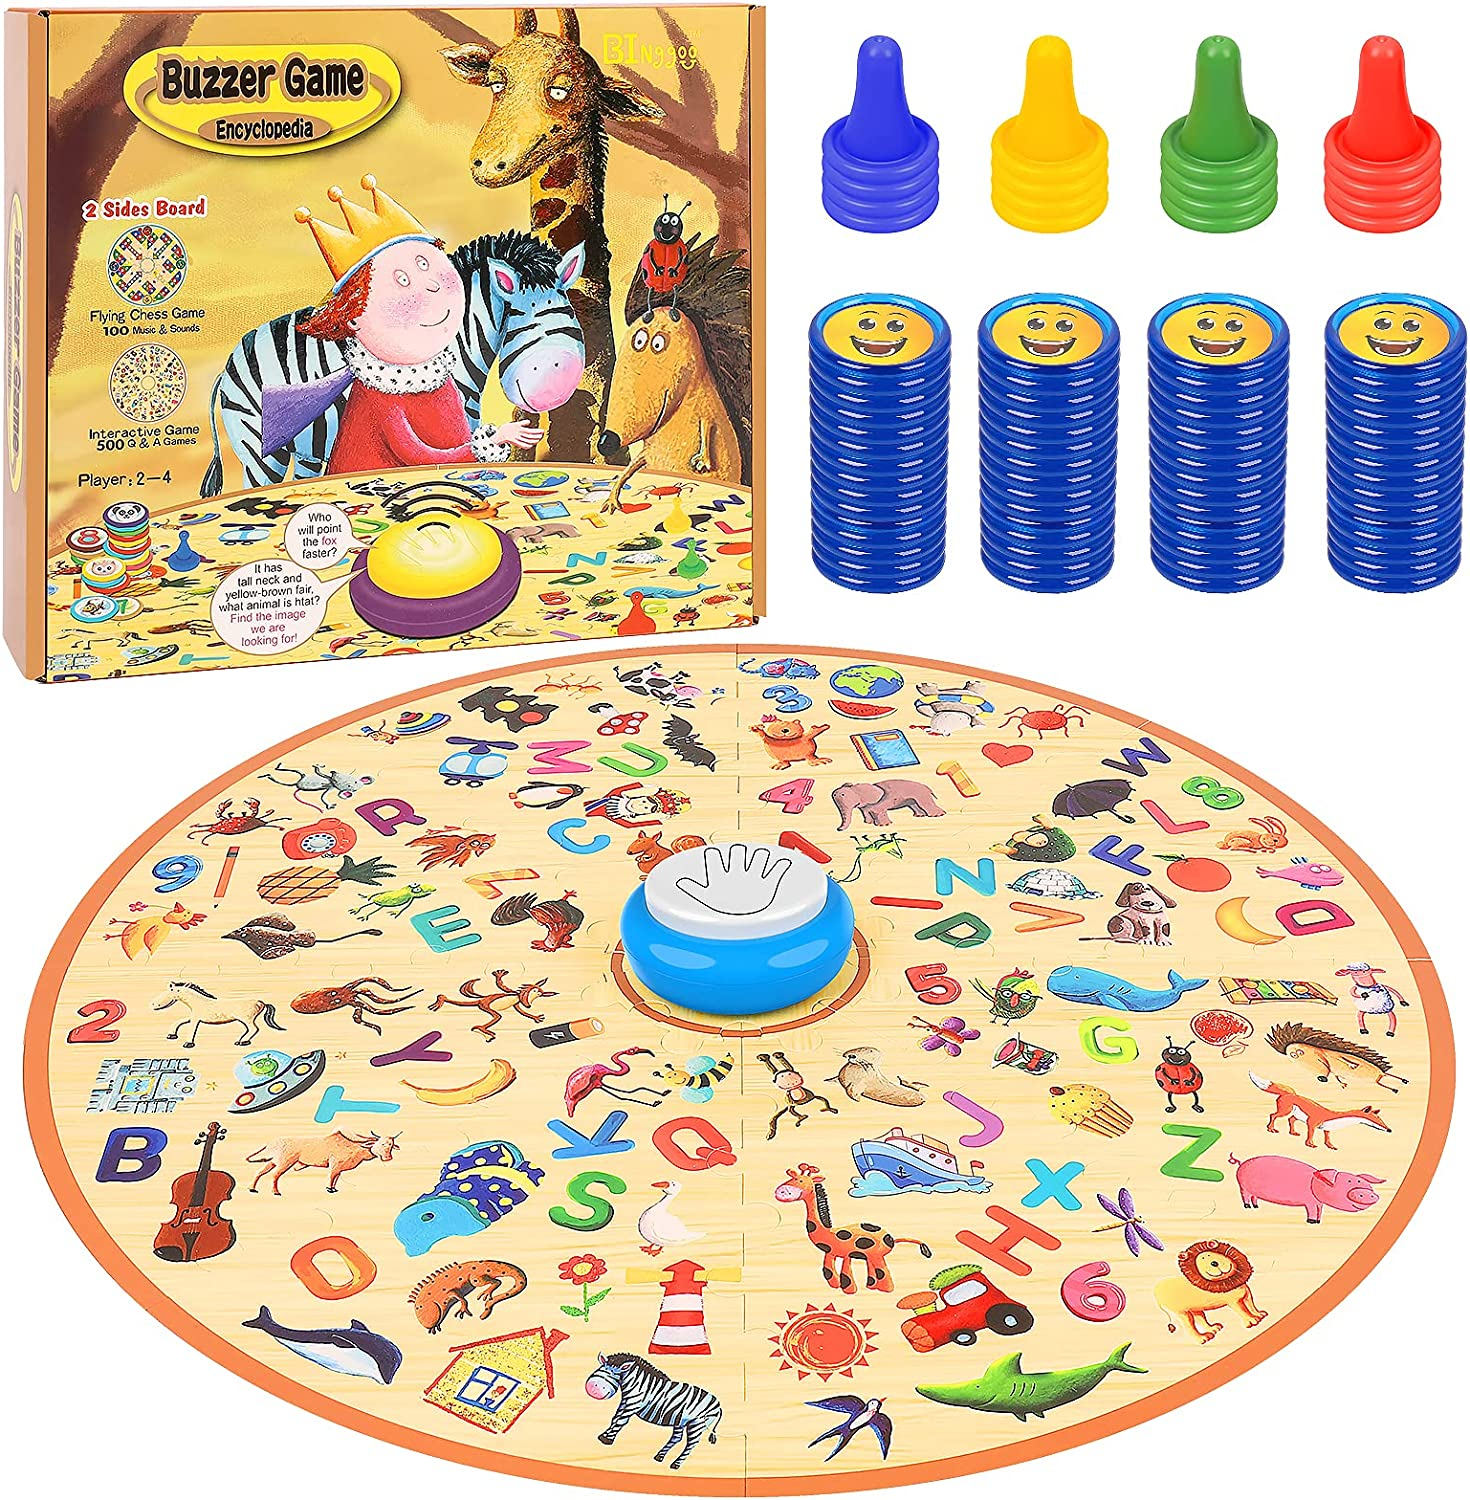 BINGGOO Family Board Games with Answer Buzzer, Quick Thinking Matching Games for Kids 4 - 10 Years Old, Kids Ludo Board Game, Children Interactive Answer Race Toy for 2-4 Players